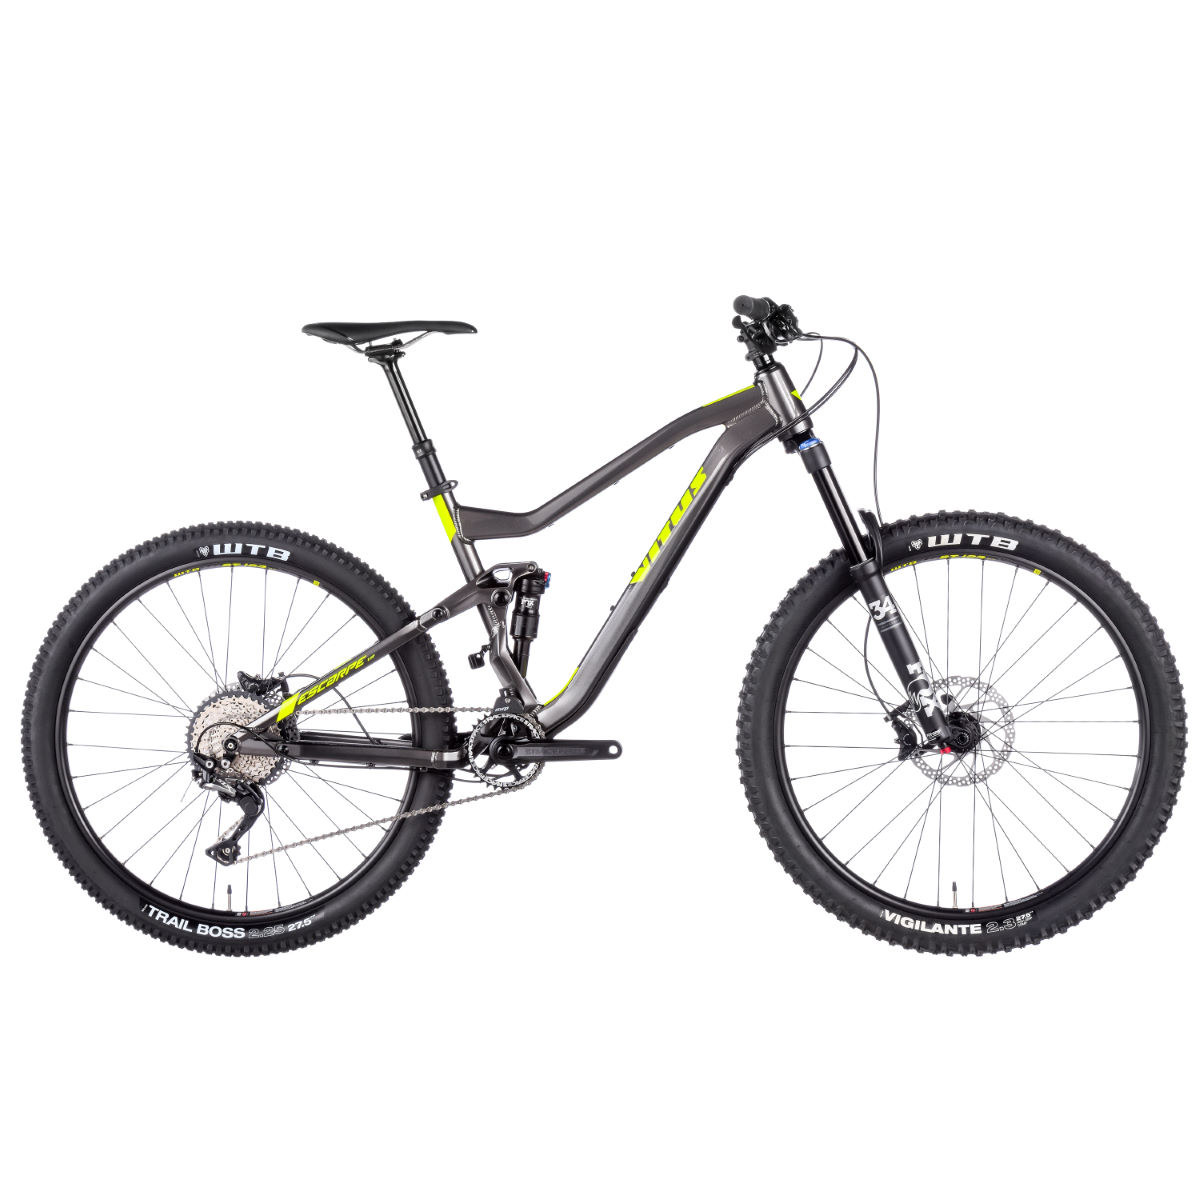 VTT tout suspendu Vitus Escarpe VR (SLX 1x11, 2017) - 15'' Stock Bike